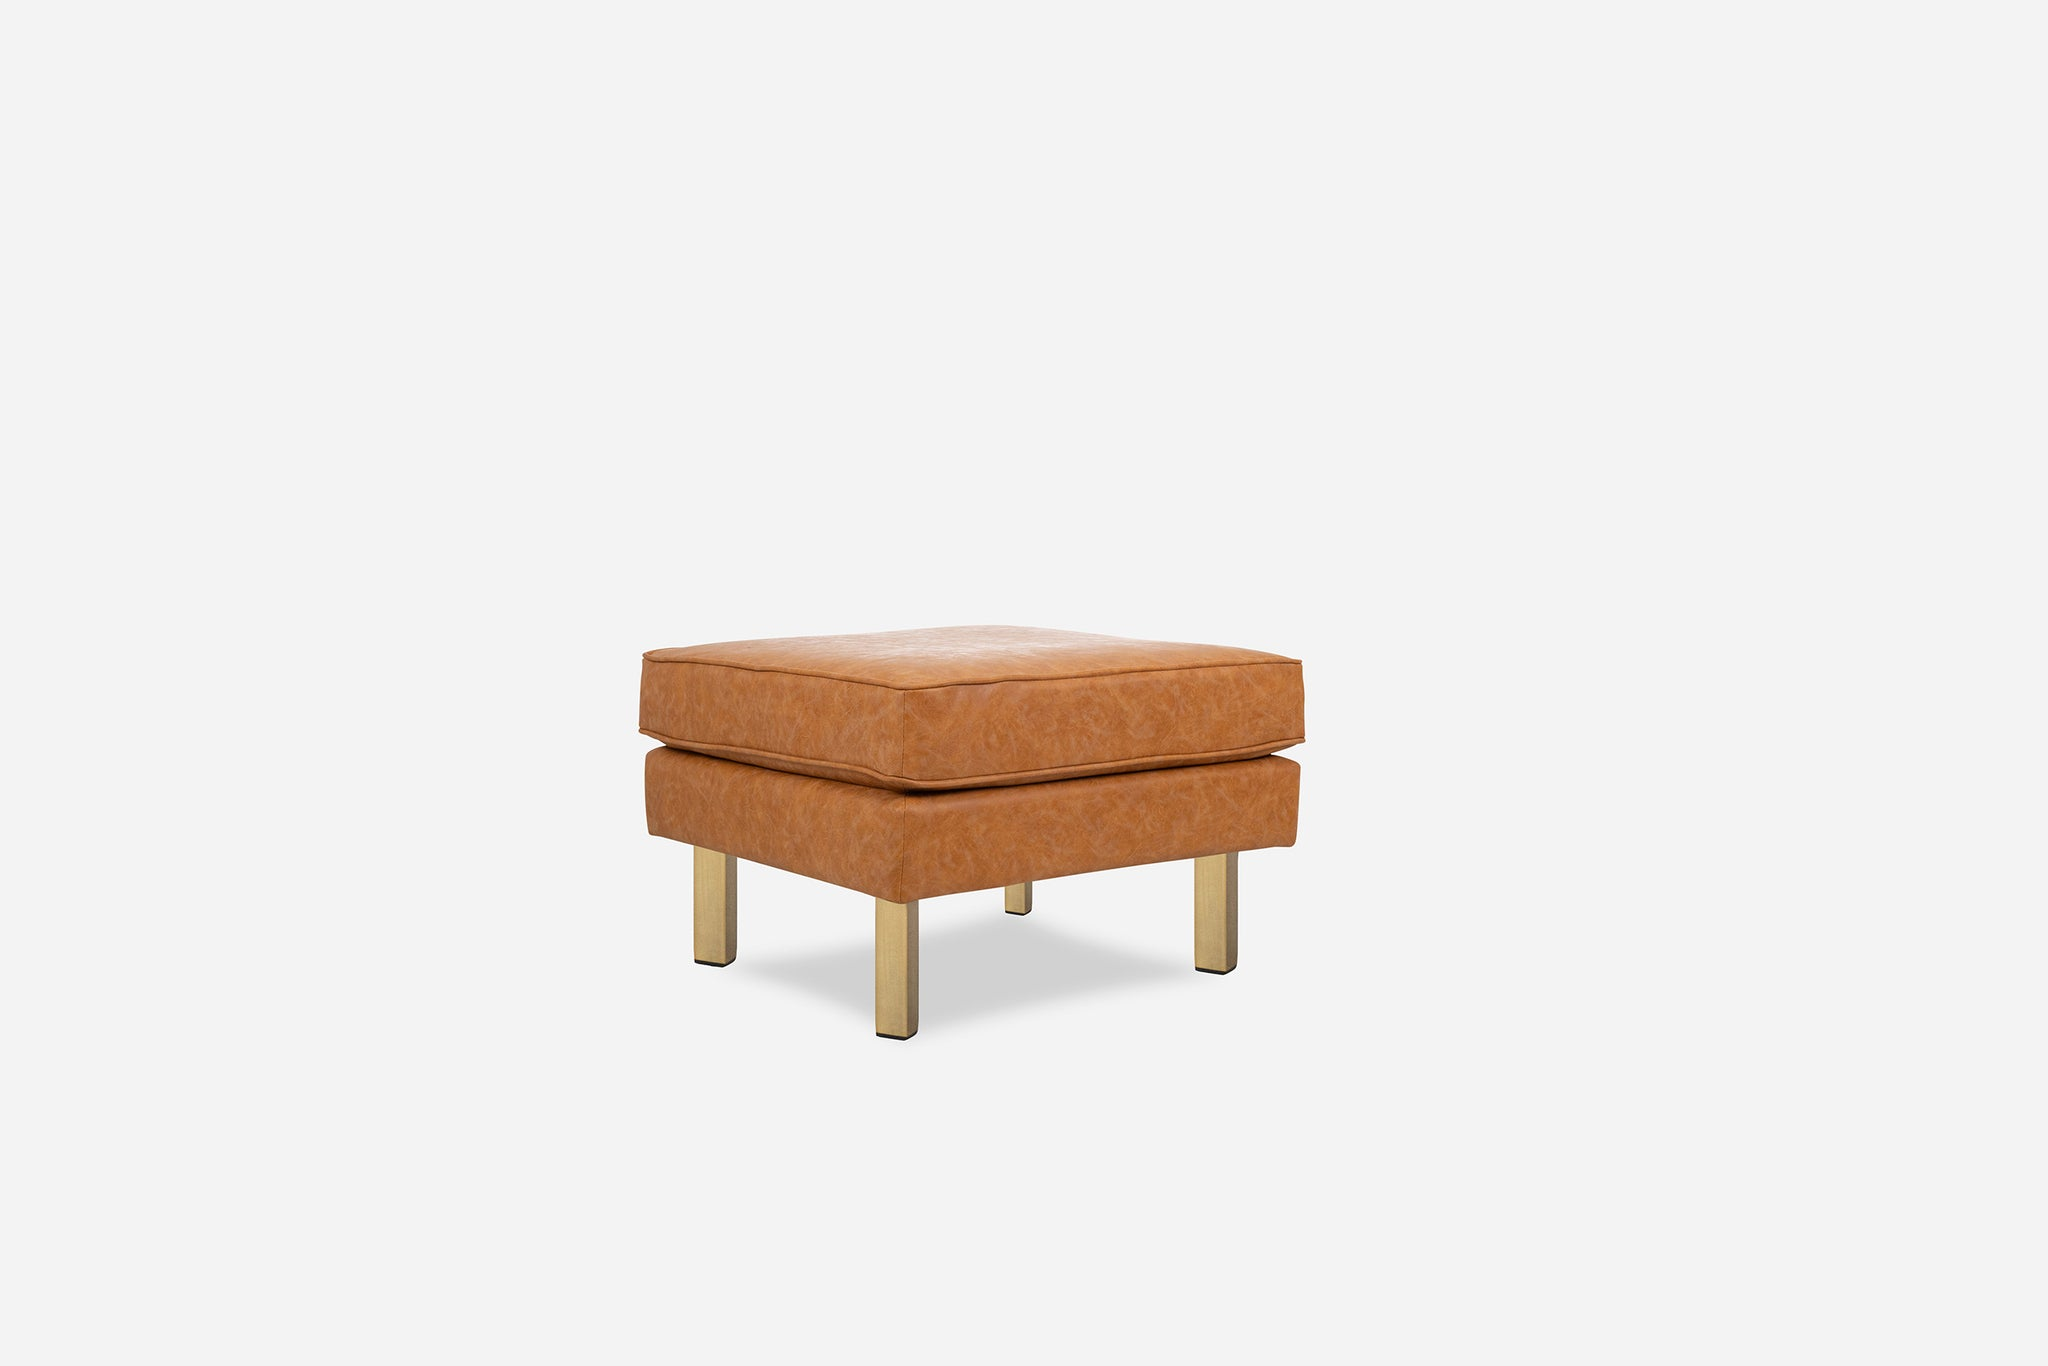 Distressed Vegan Leather Ottoman, Gold Legs